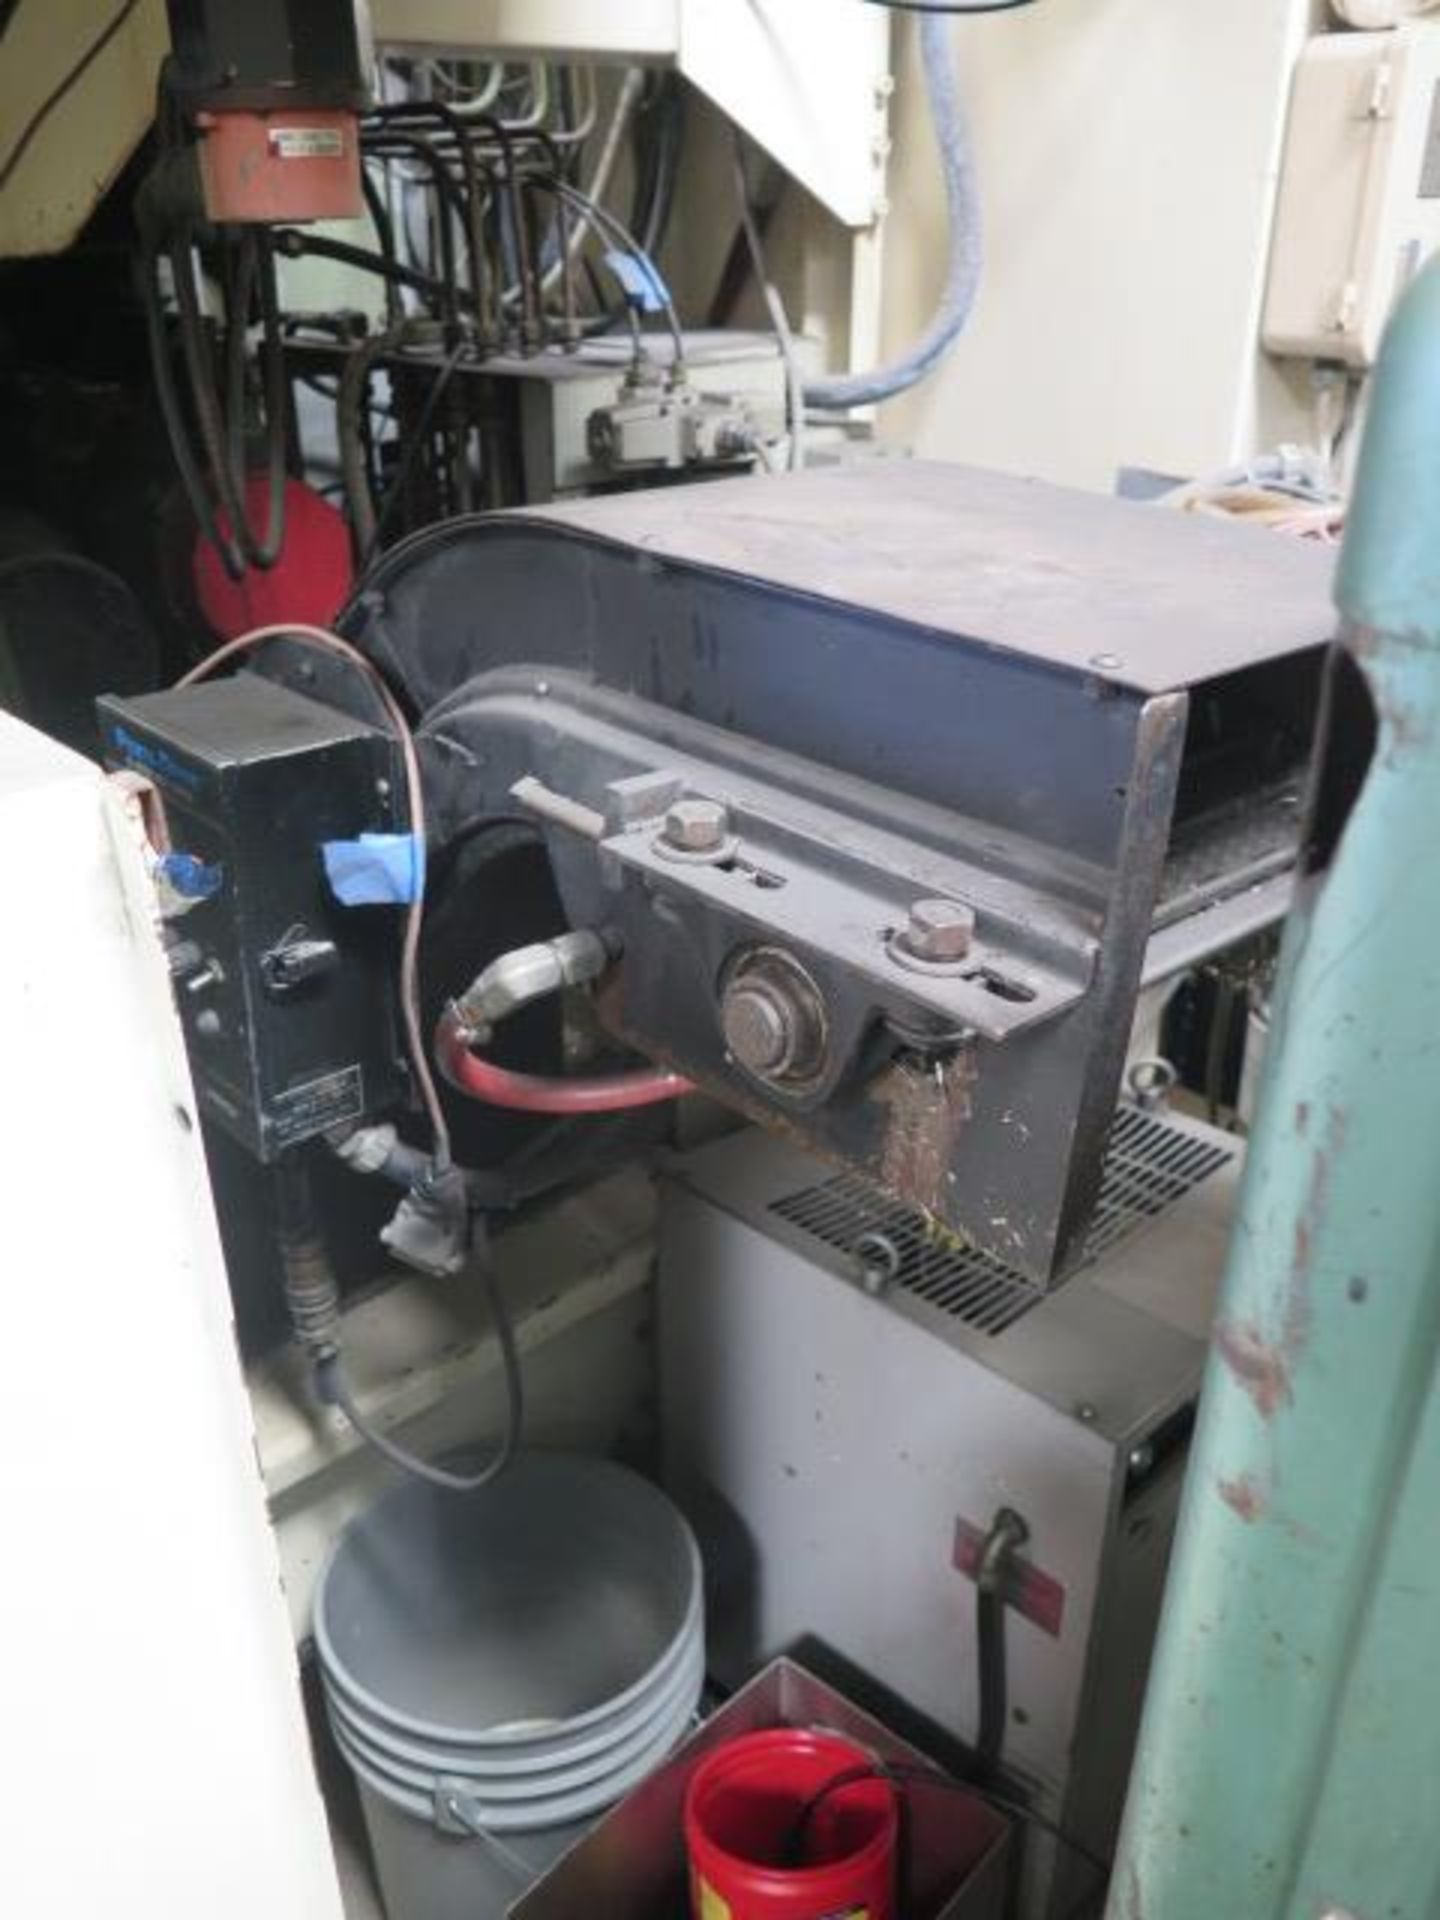 Tsugami MS3.10P Type MA3H 4-Axis 10-Pallet CNC HMC (HAS X-AXIS PROBLEM), SOLD AS IS - Image 16 of 20